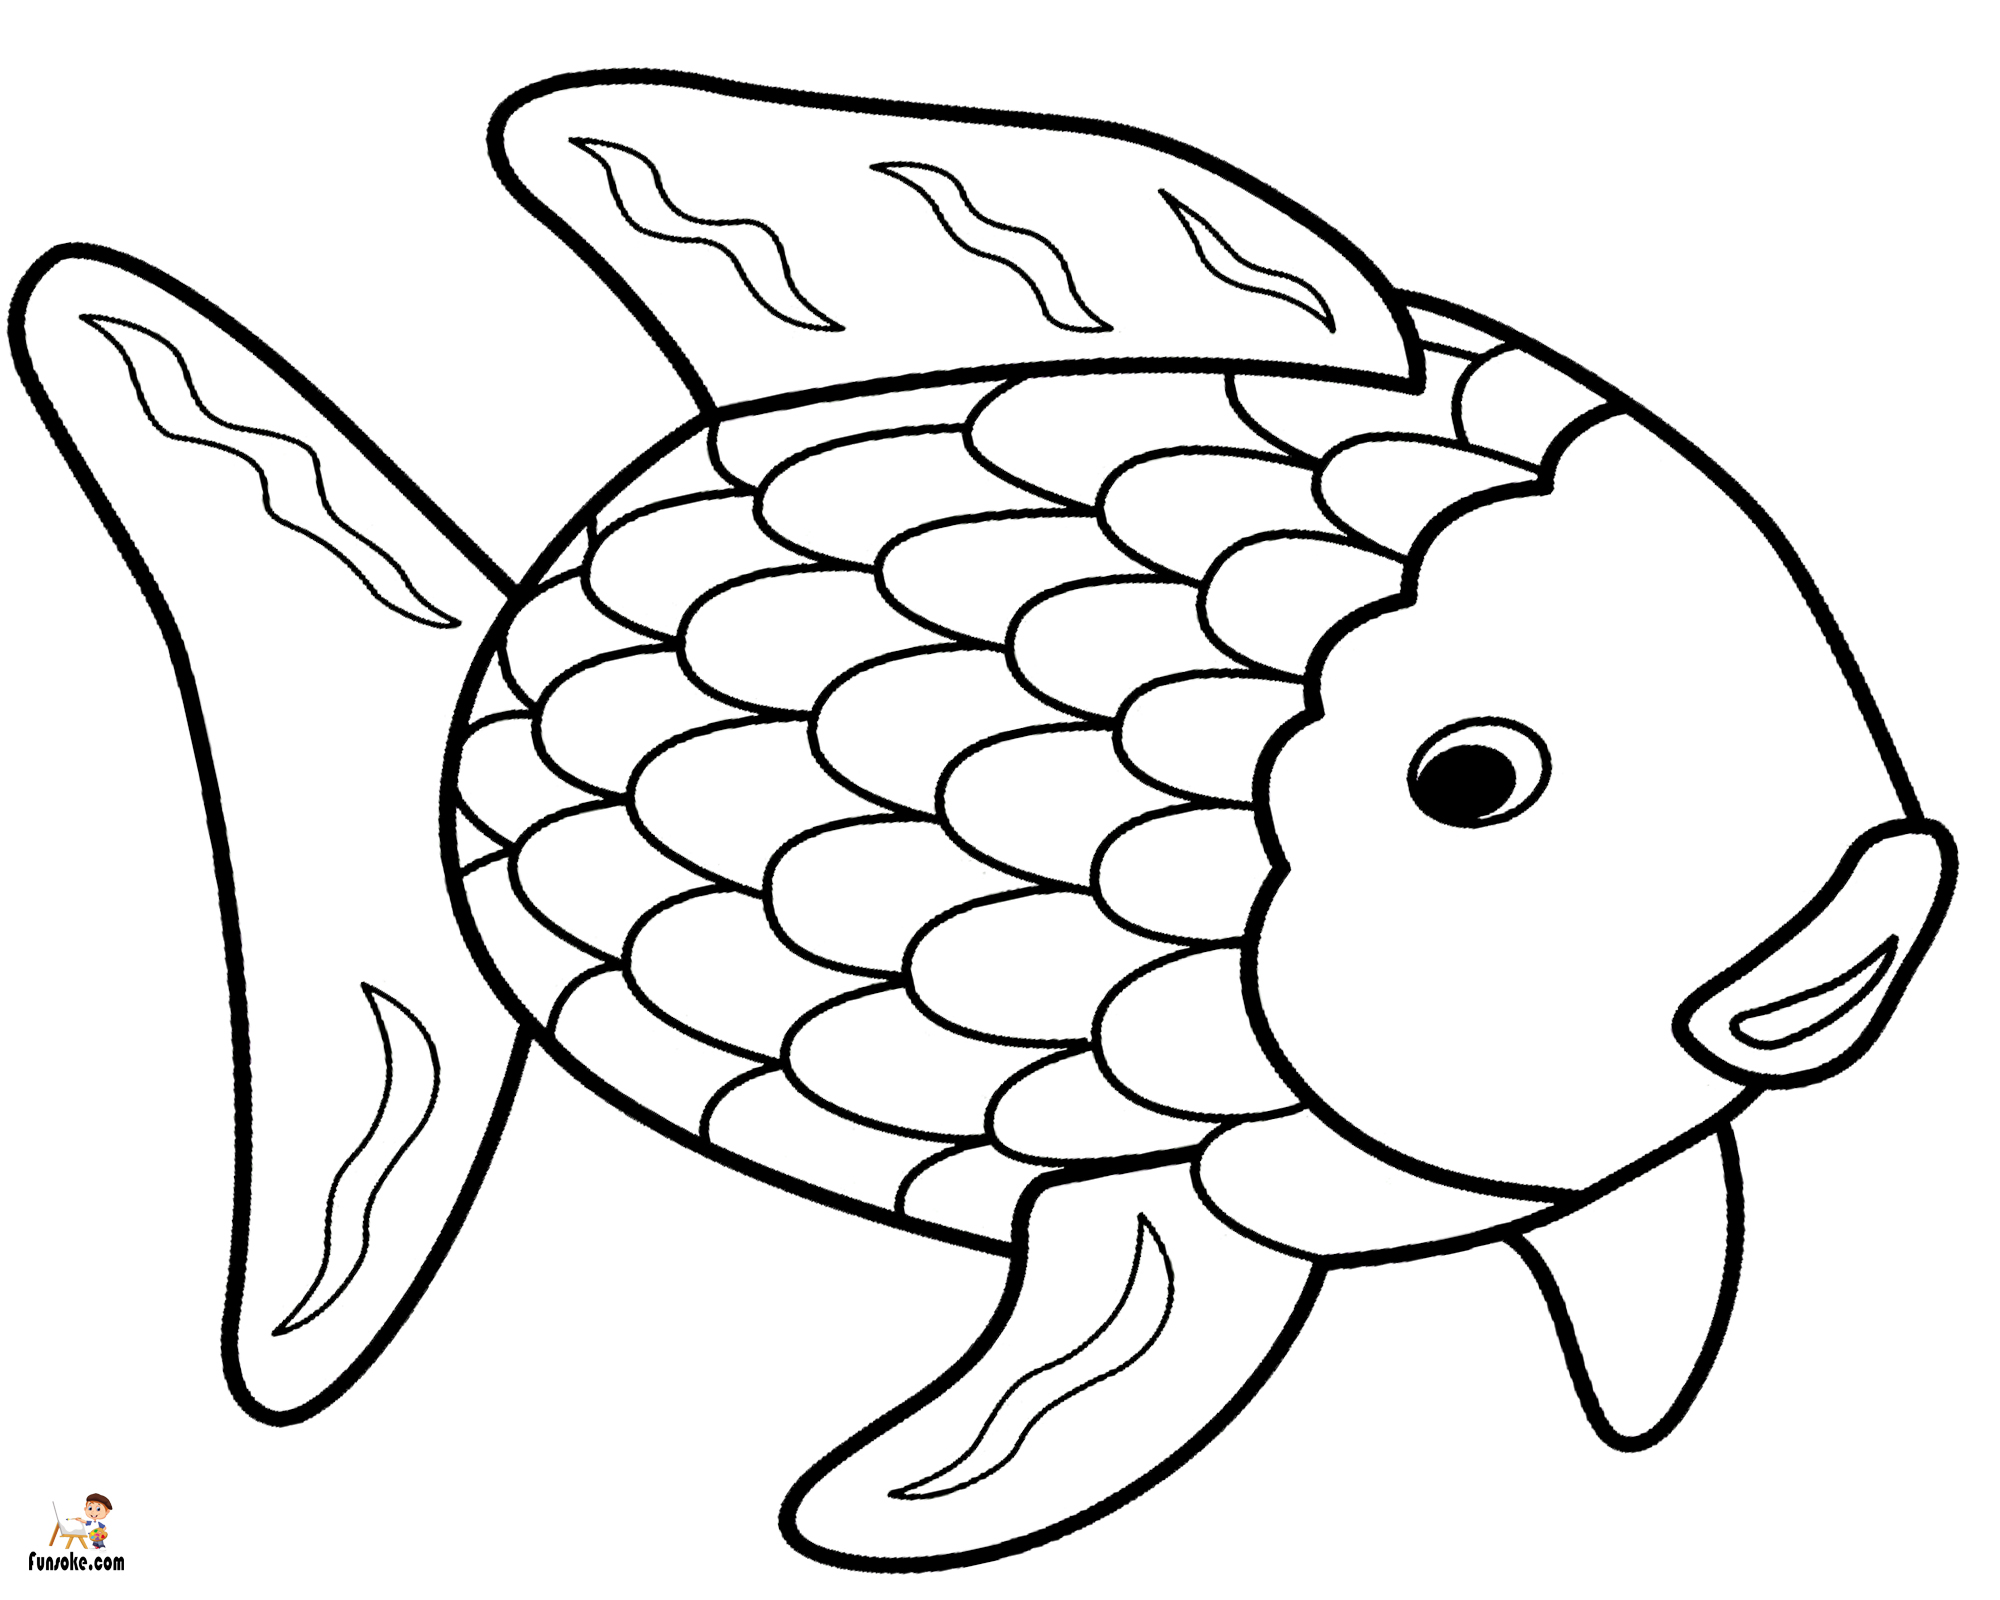 fish picture to color fish coloring pages for kids preschool and kindergarten color picture fish to